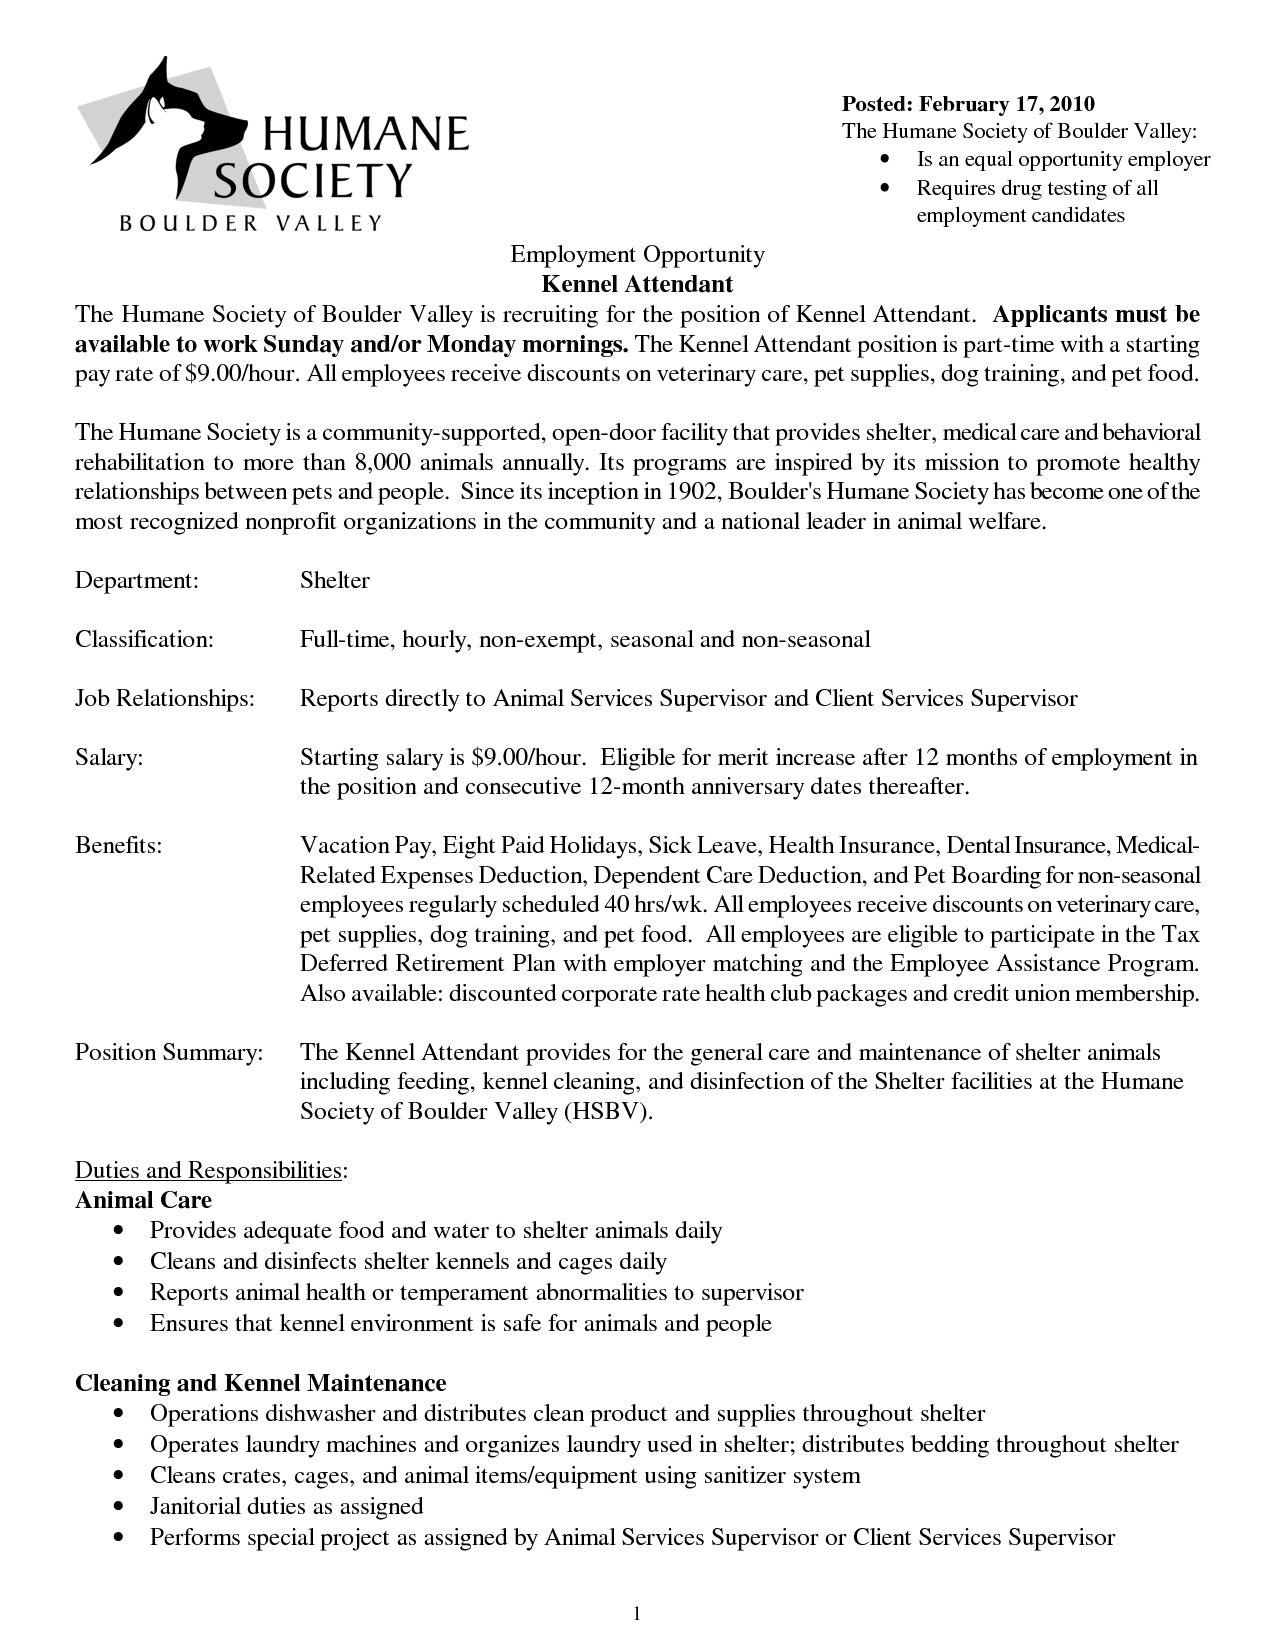 Kennel Technician Resume Cover Letter Want Additional Info For Animal Care